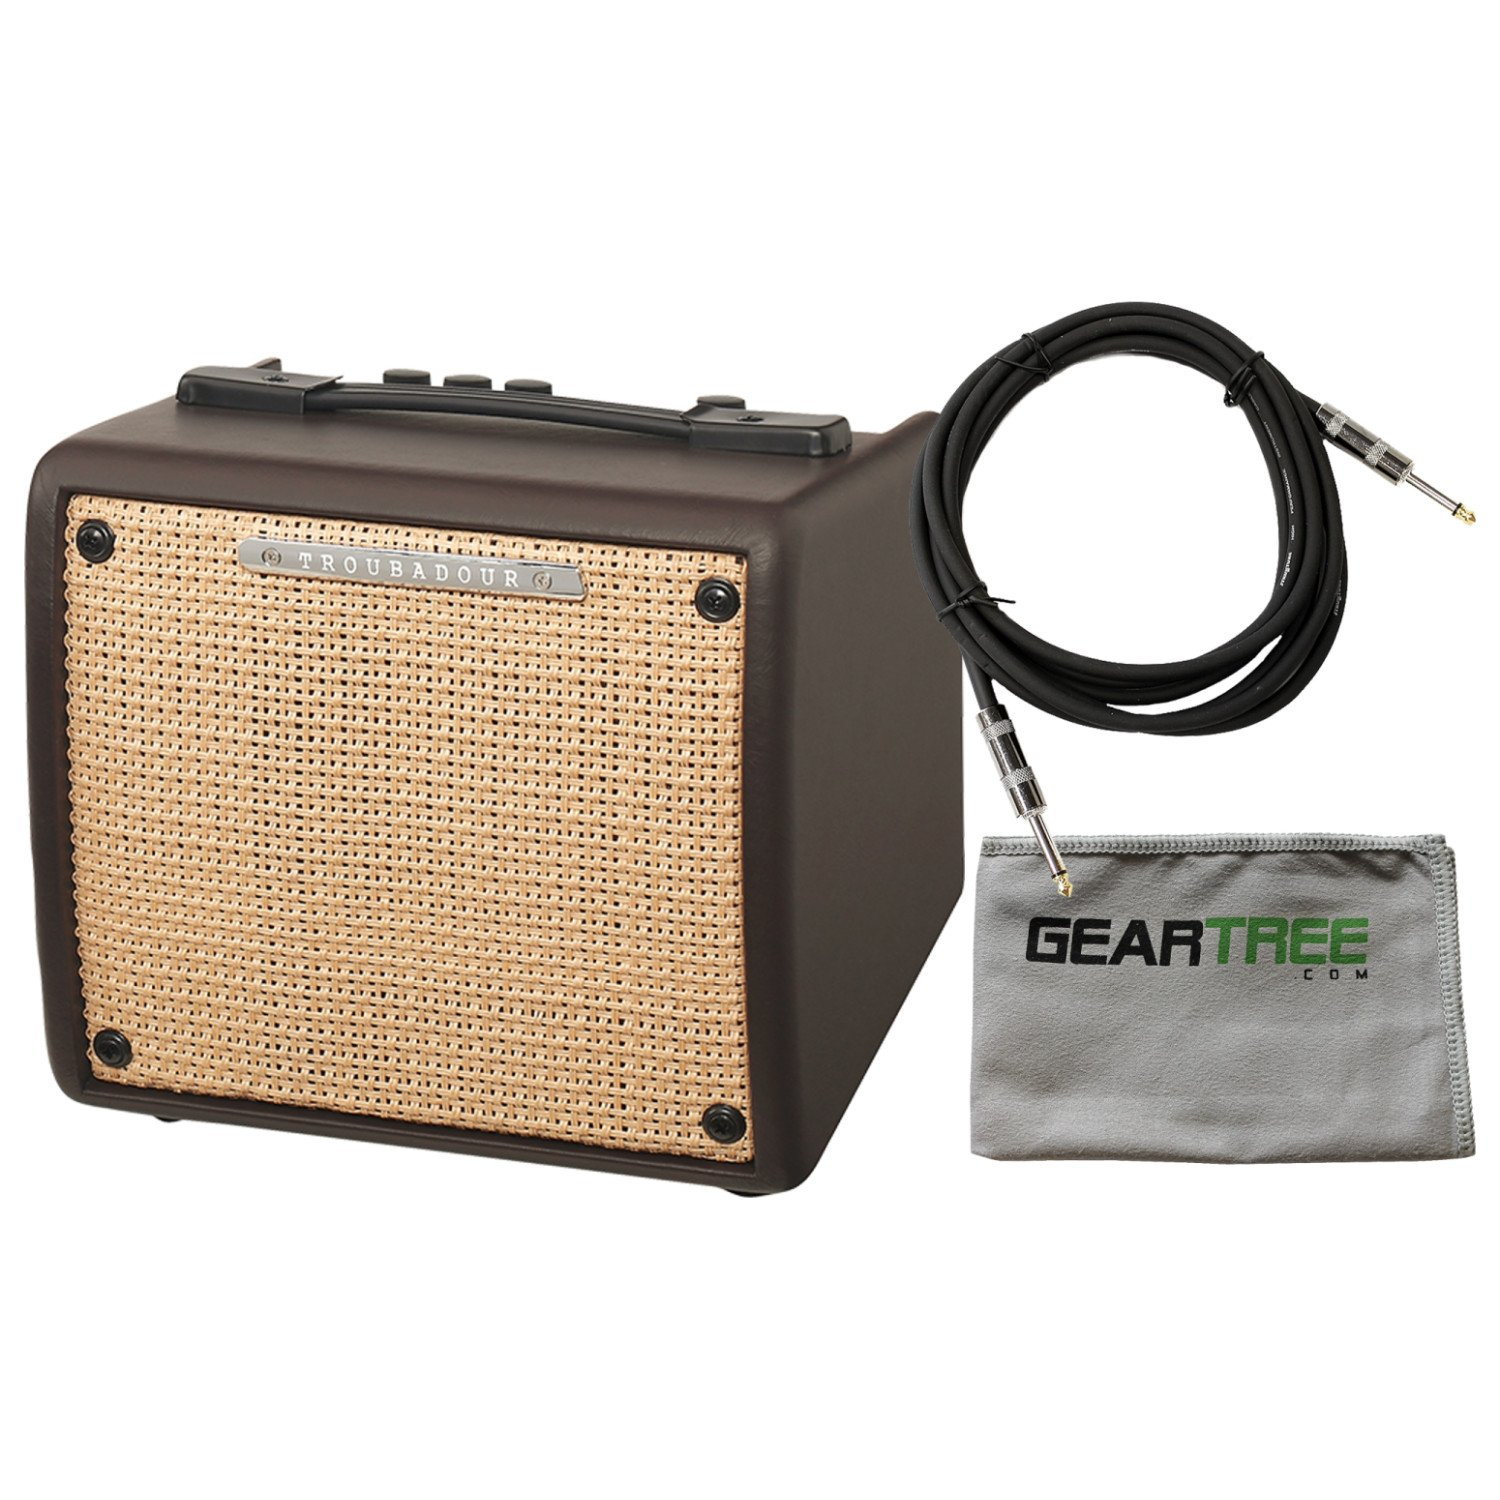 Ibanez T15II Troubadour II 15 Watt Acoustic Guitar Combo Amplifier Brown w/ Cabl